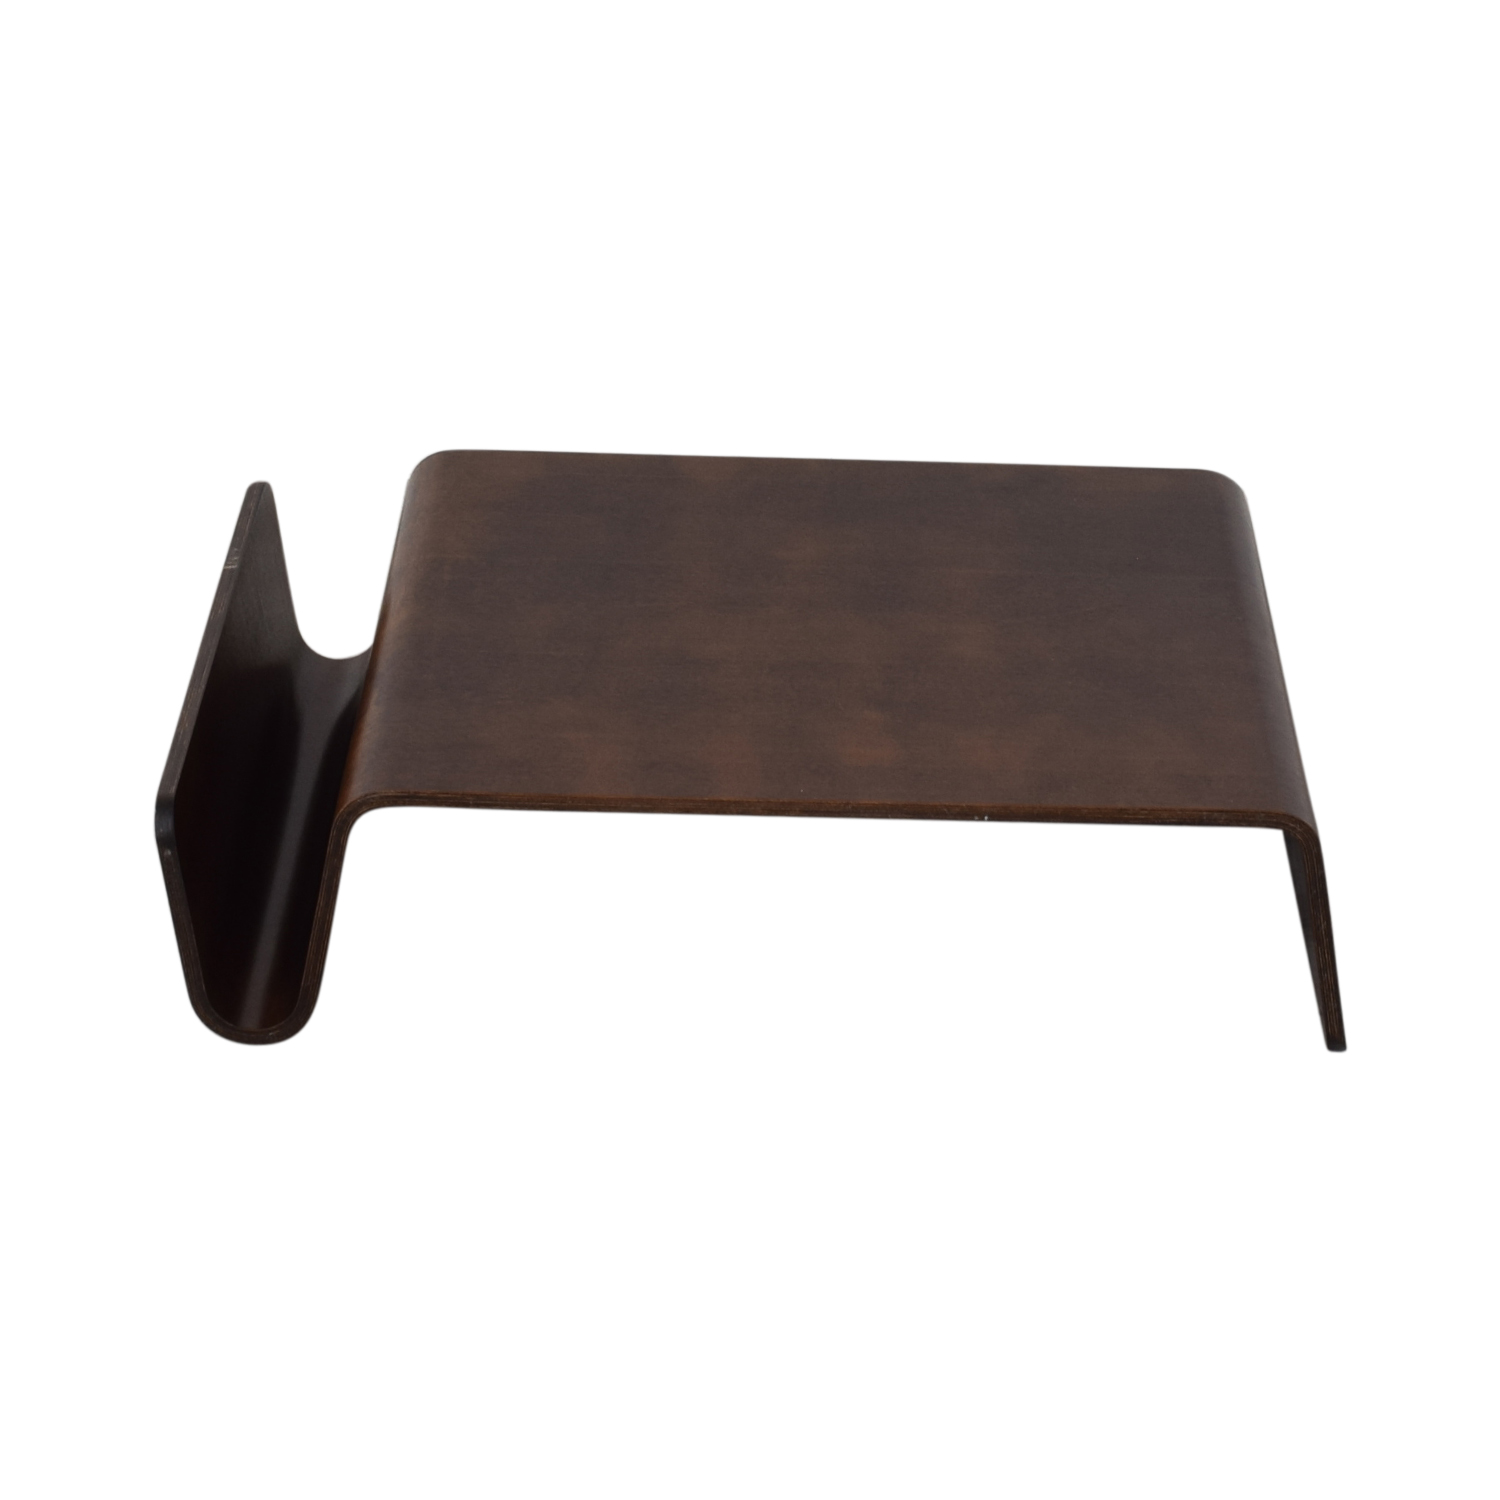 Restoration Hardware Restoration Hardware Coffee Table used